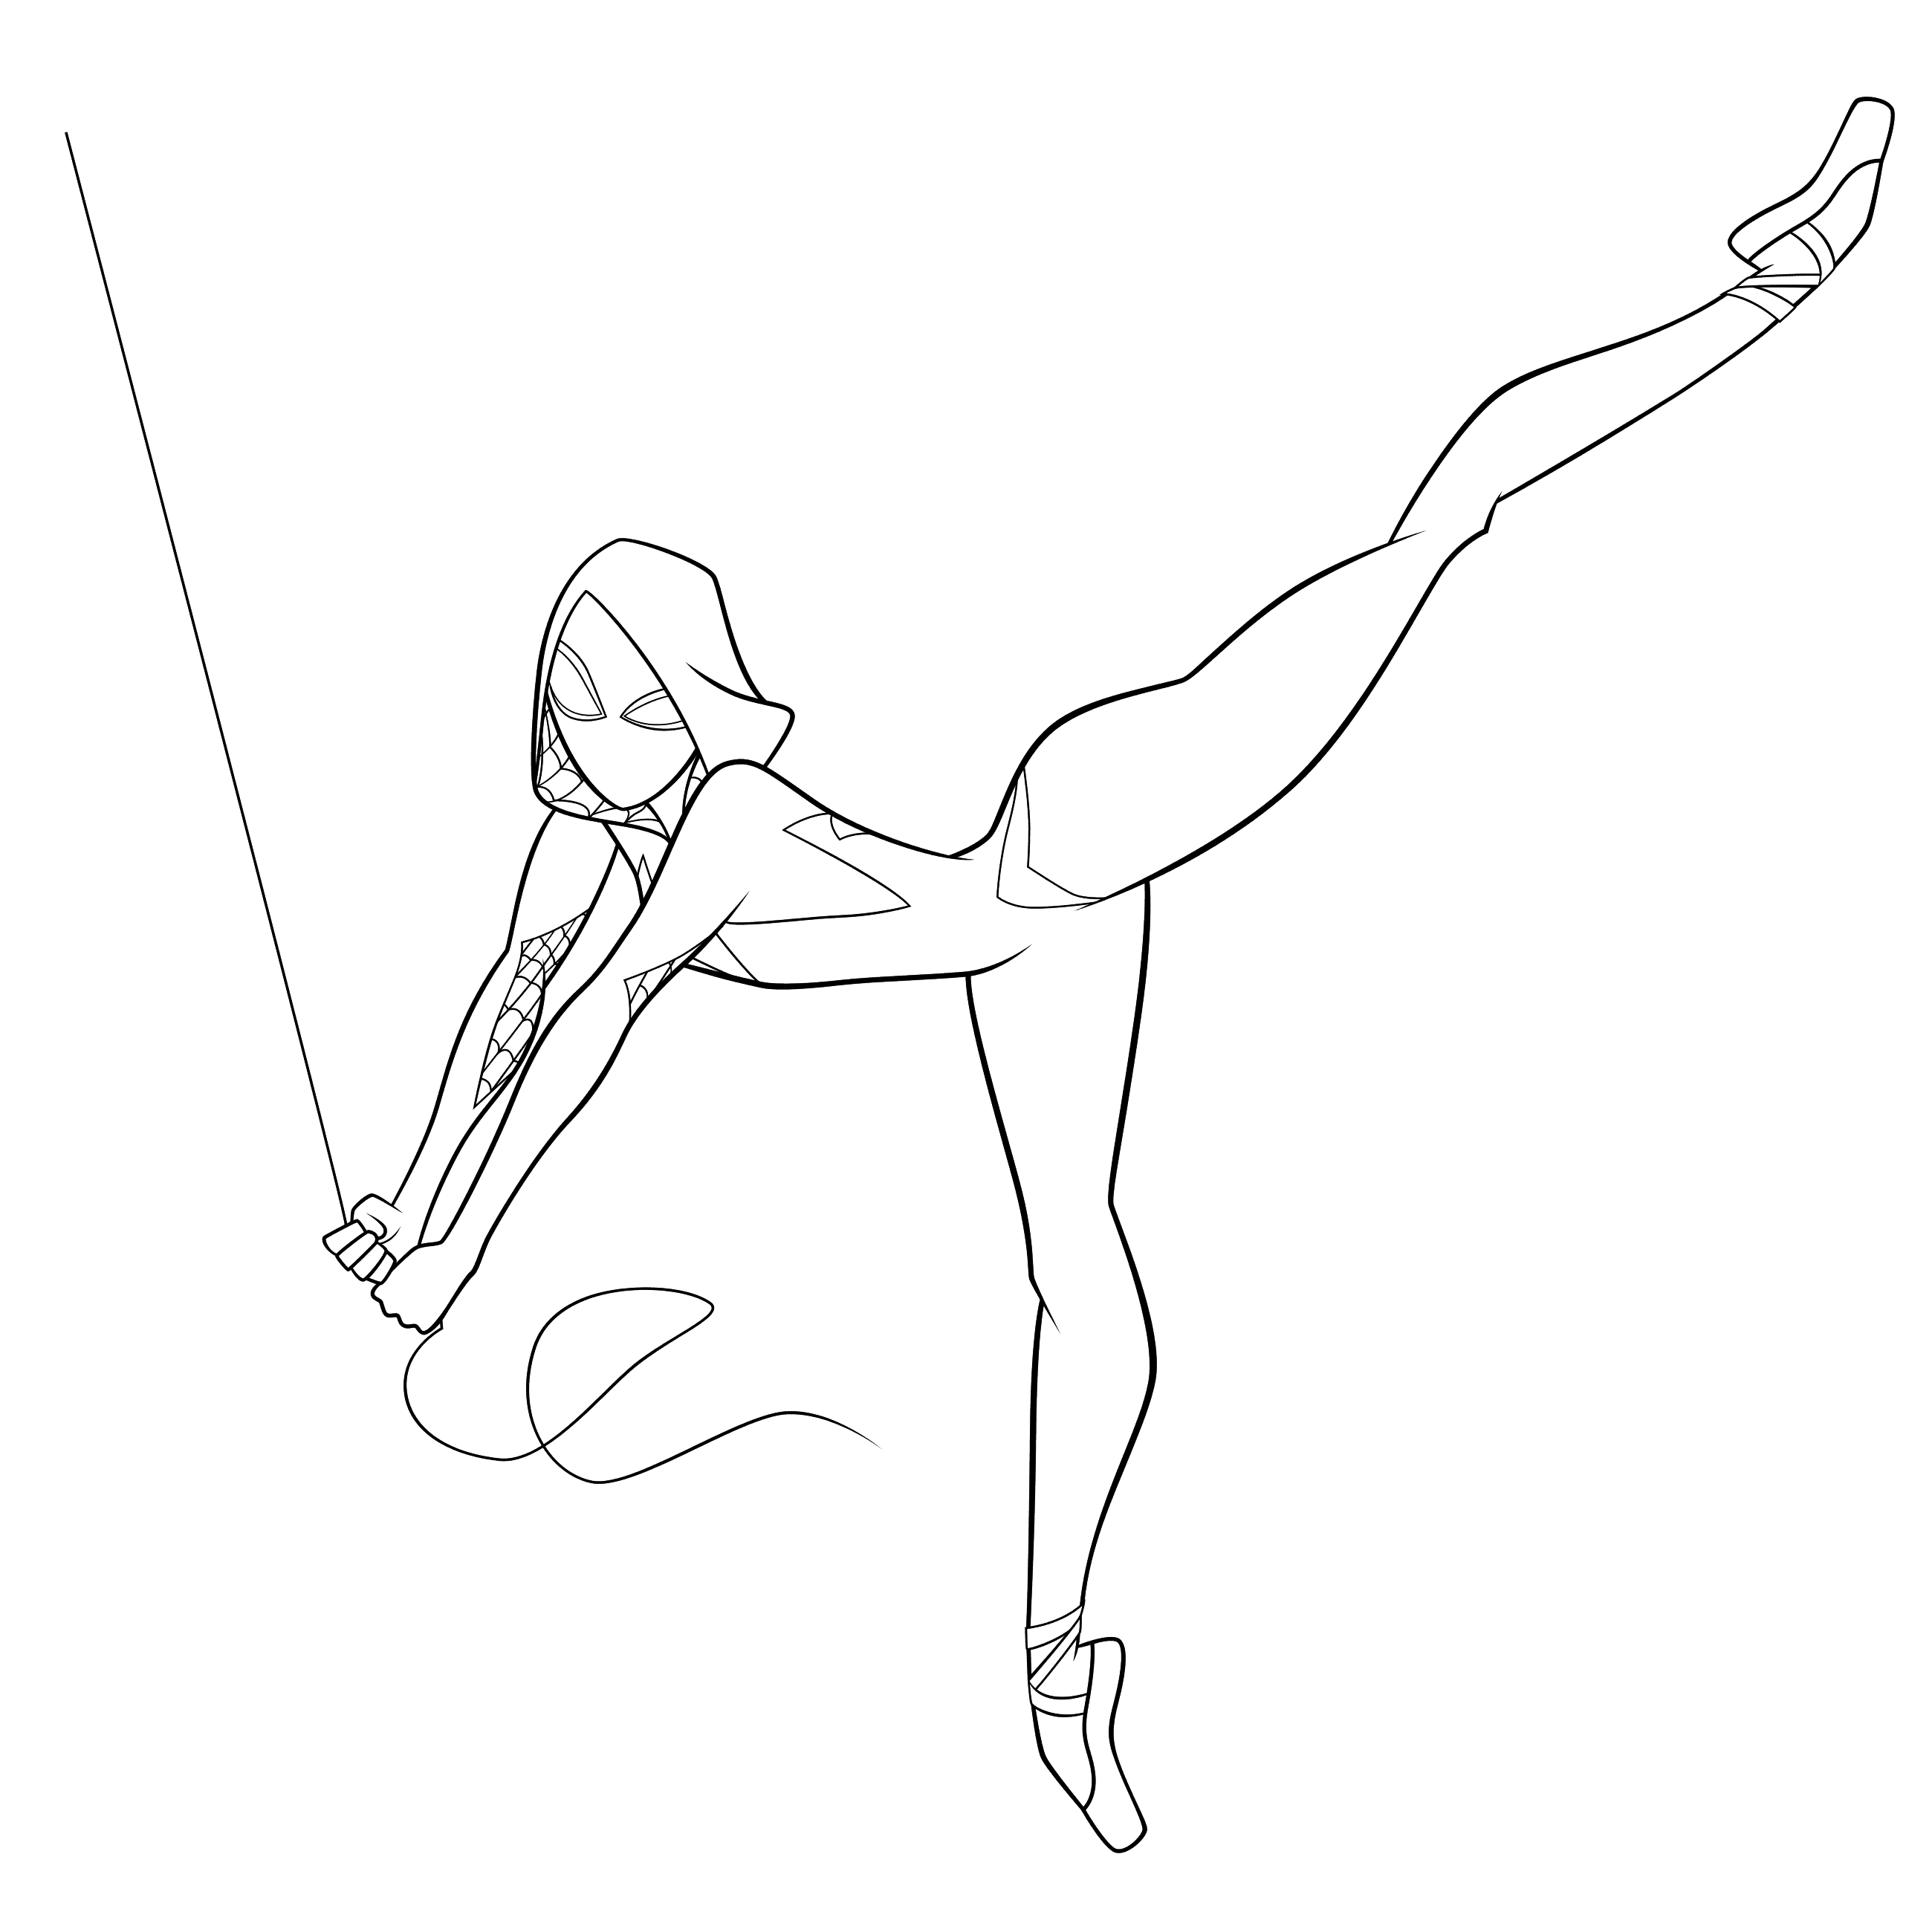 gwen spiderman coloring pages gwen stacy use her powers spiderman coloring pages printable coloring gwen spiderman pages